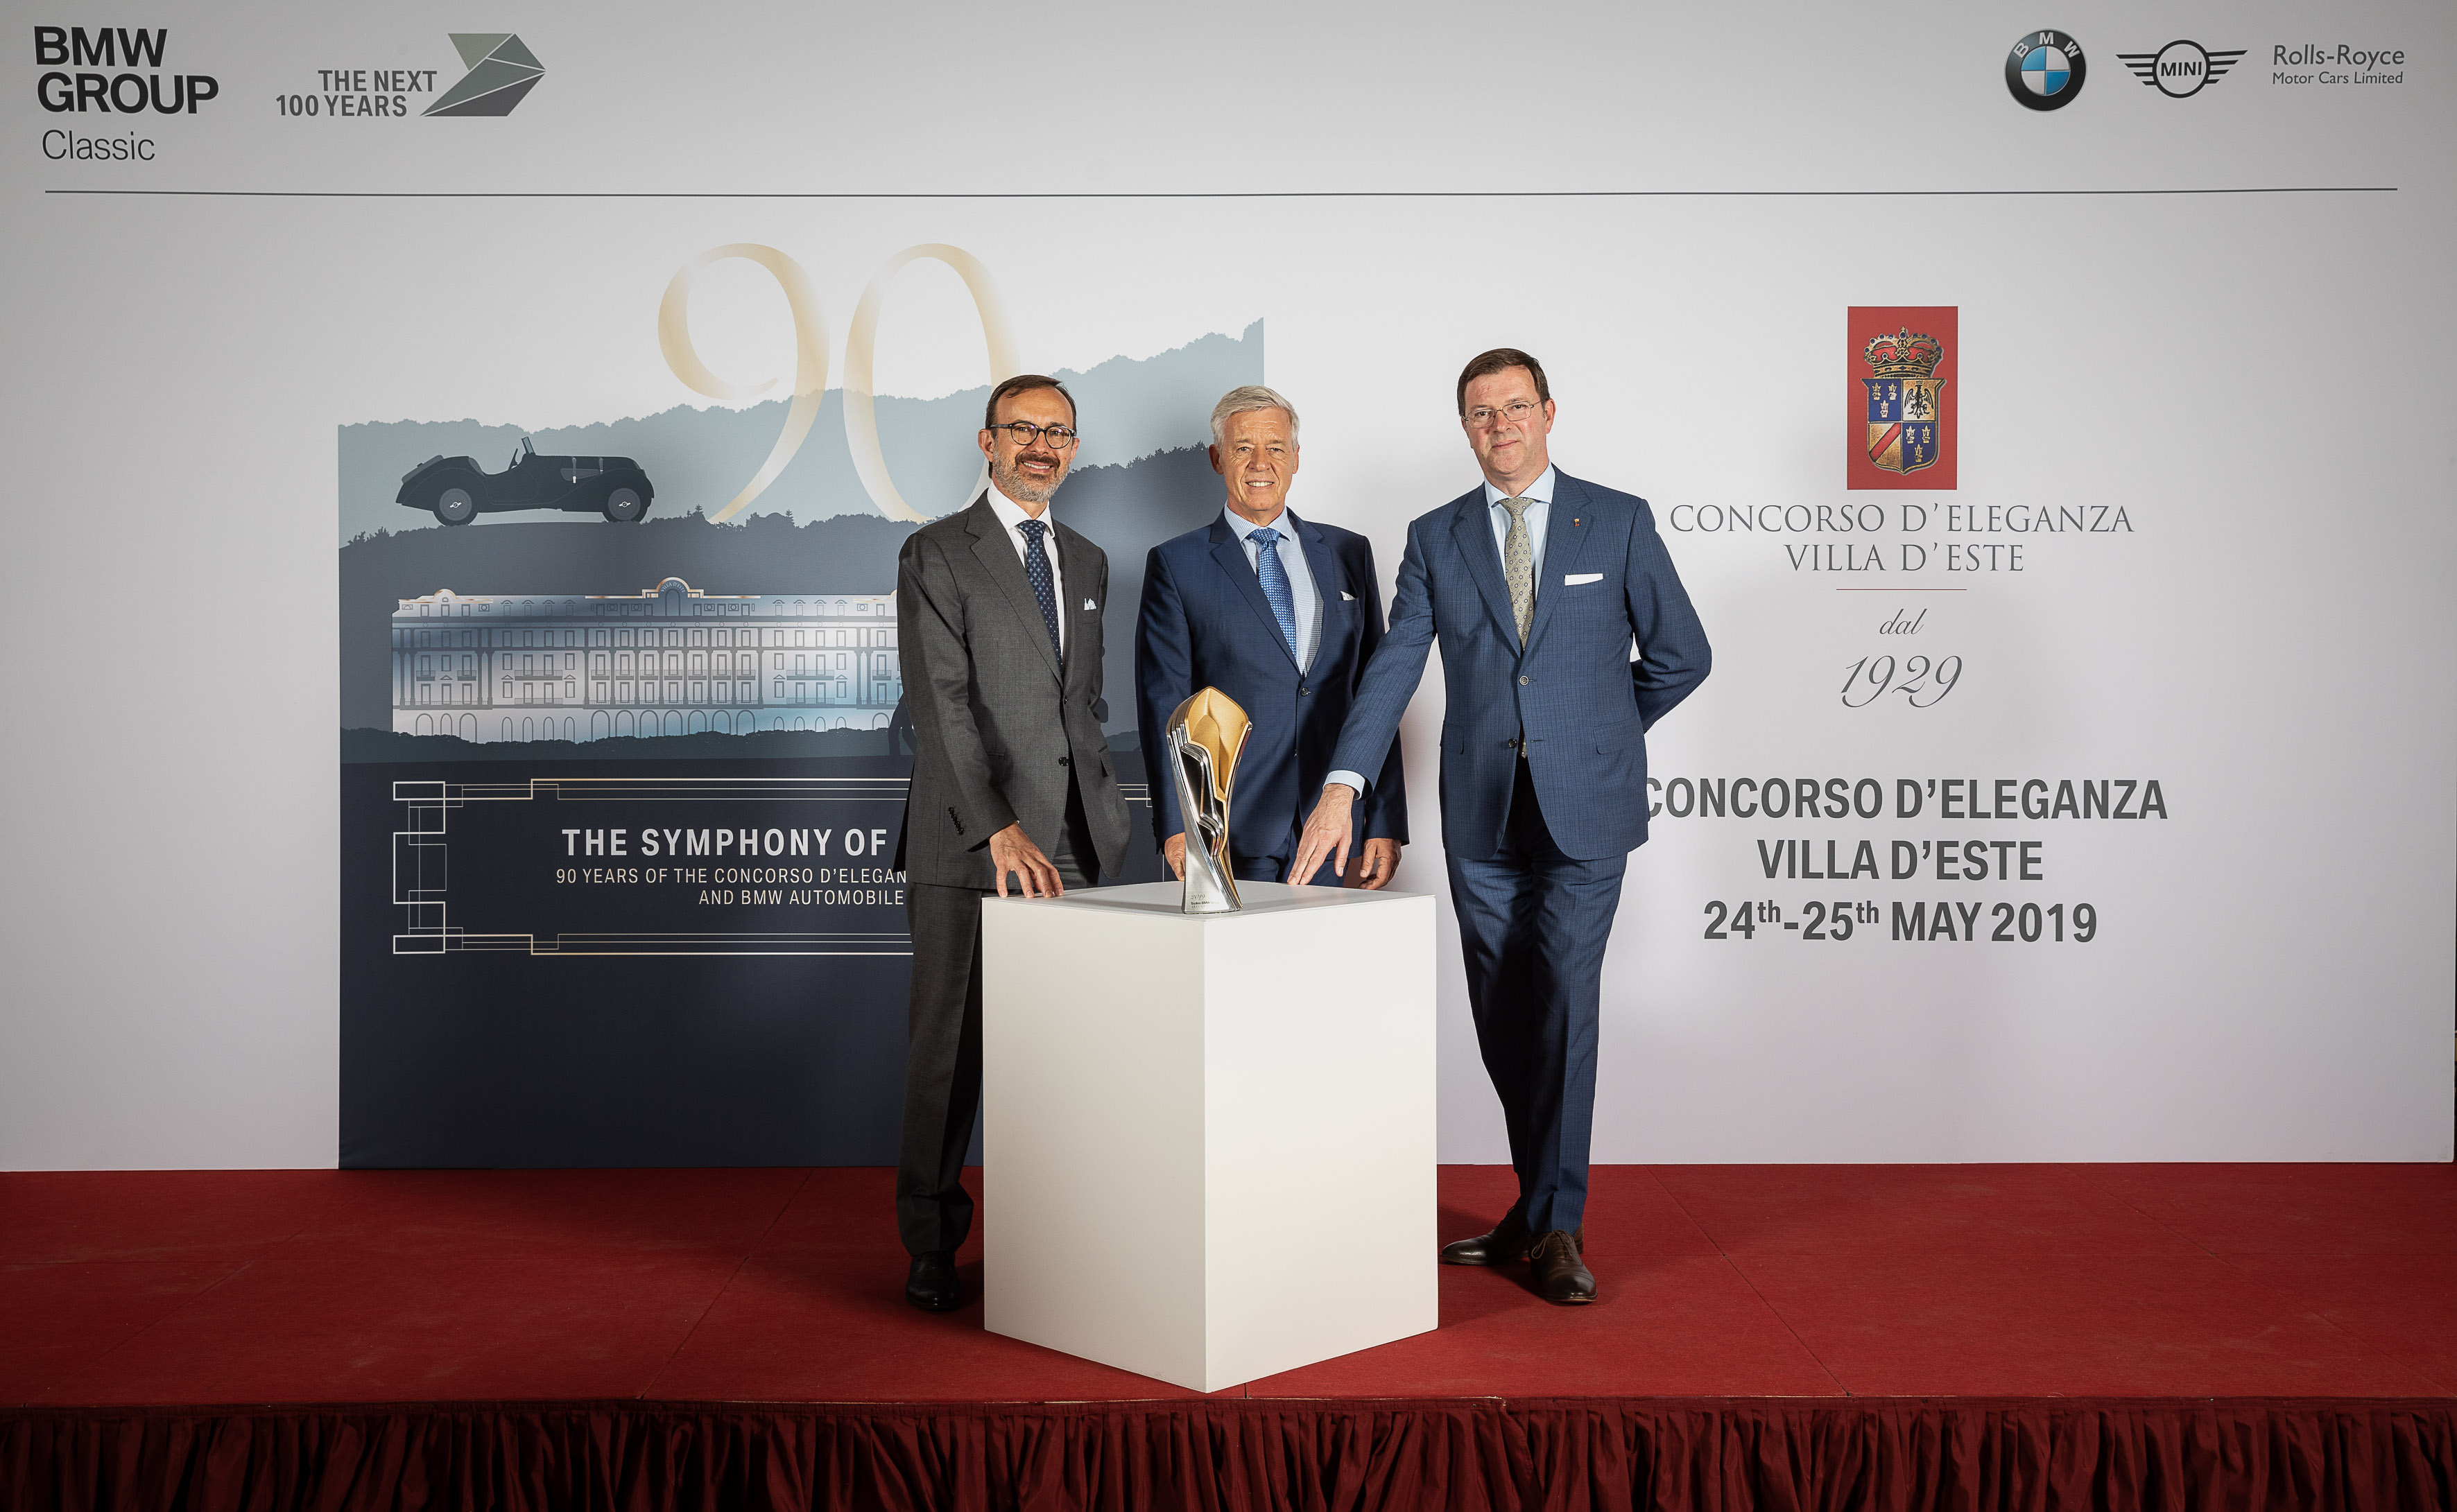 New Trophy for Concorso d'Eleganza Villa d'Este Unveiled in Full